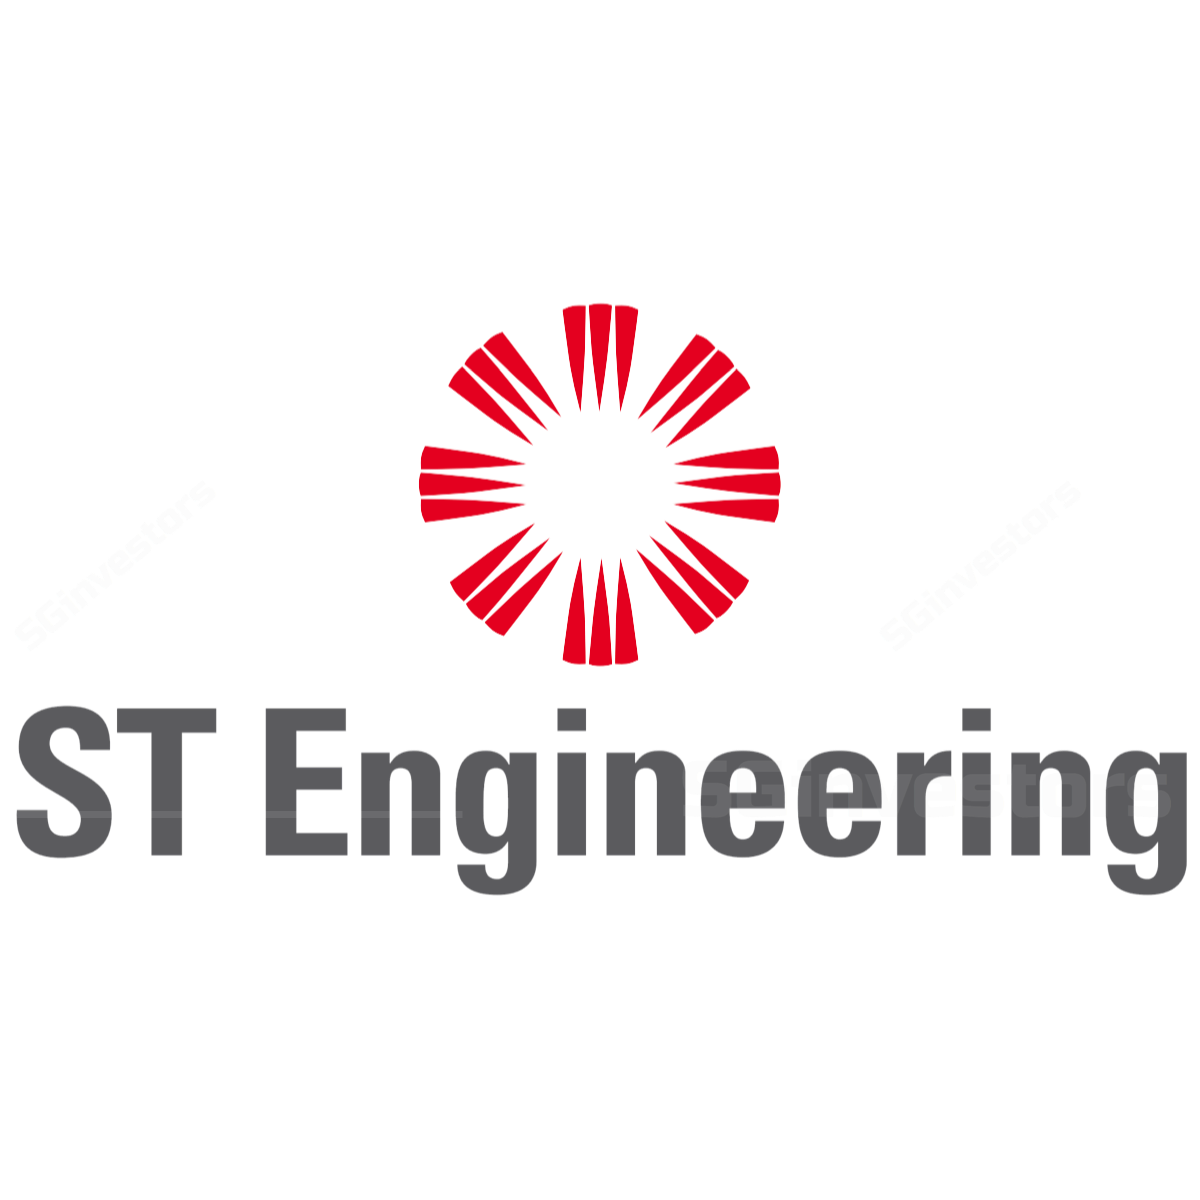 ST Engineering - DBS Vickers 2017-02-17: Riding on new growth areas